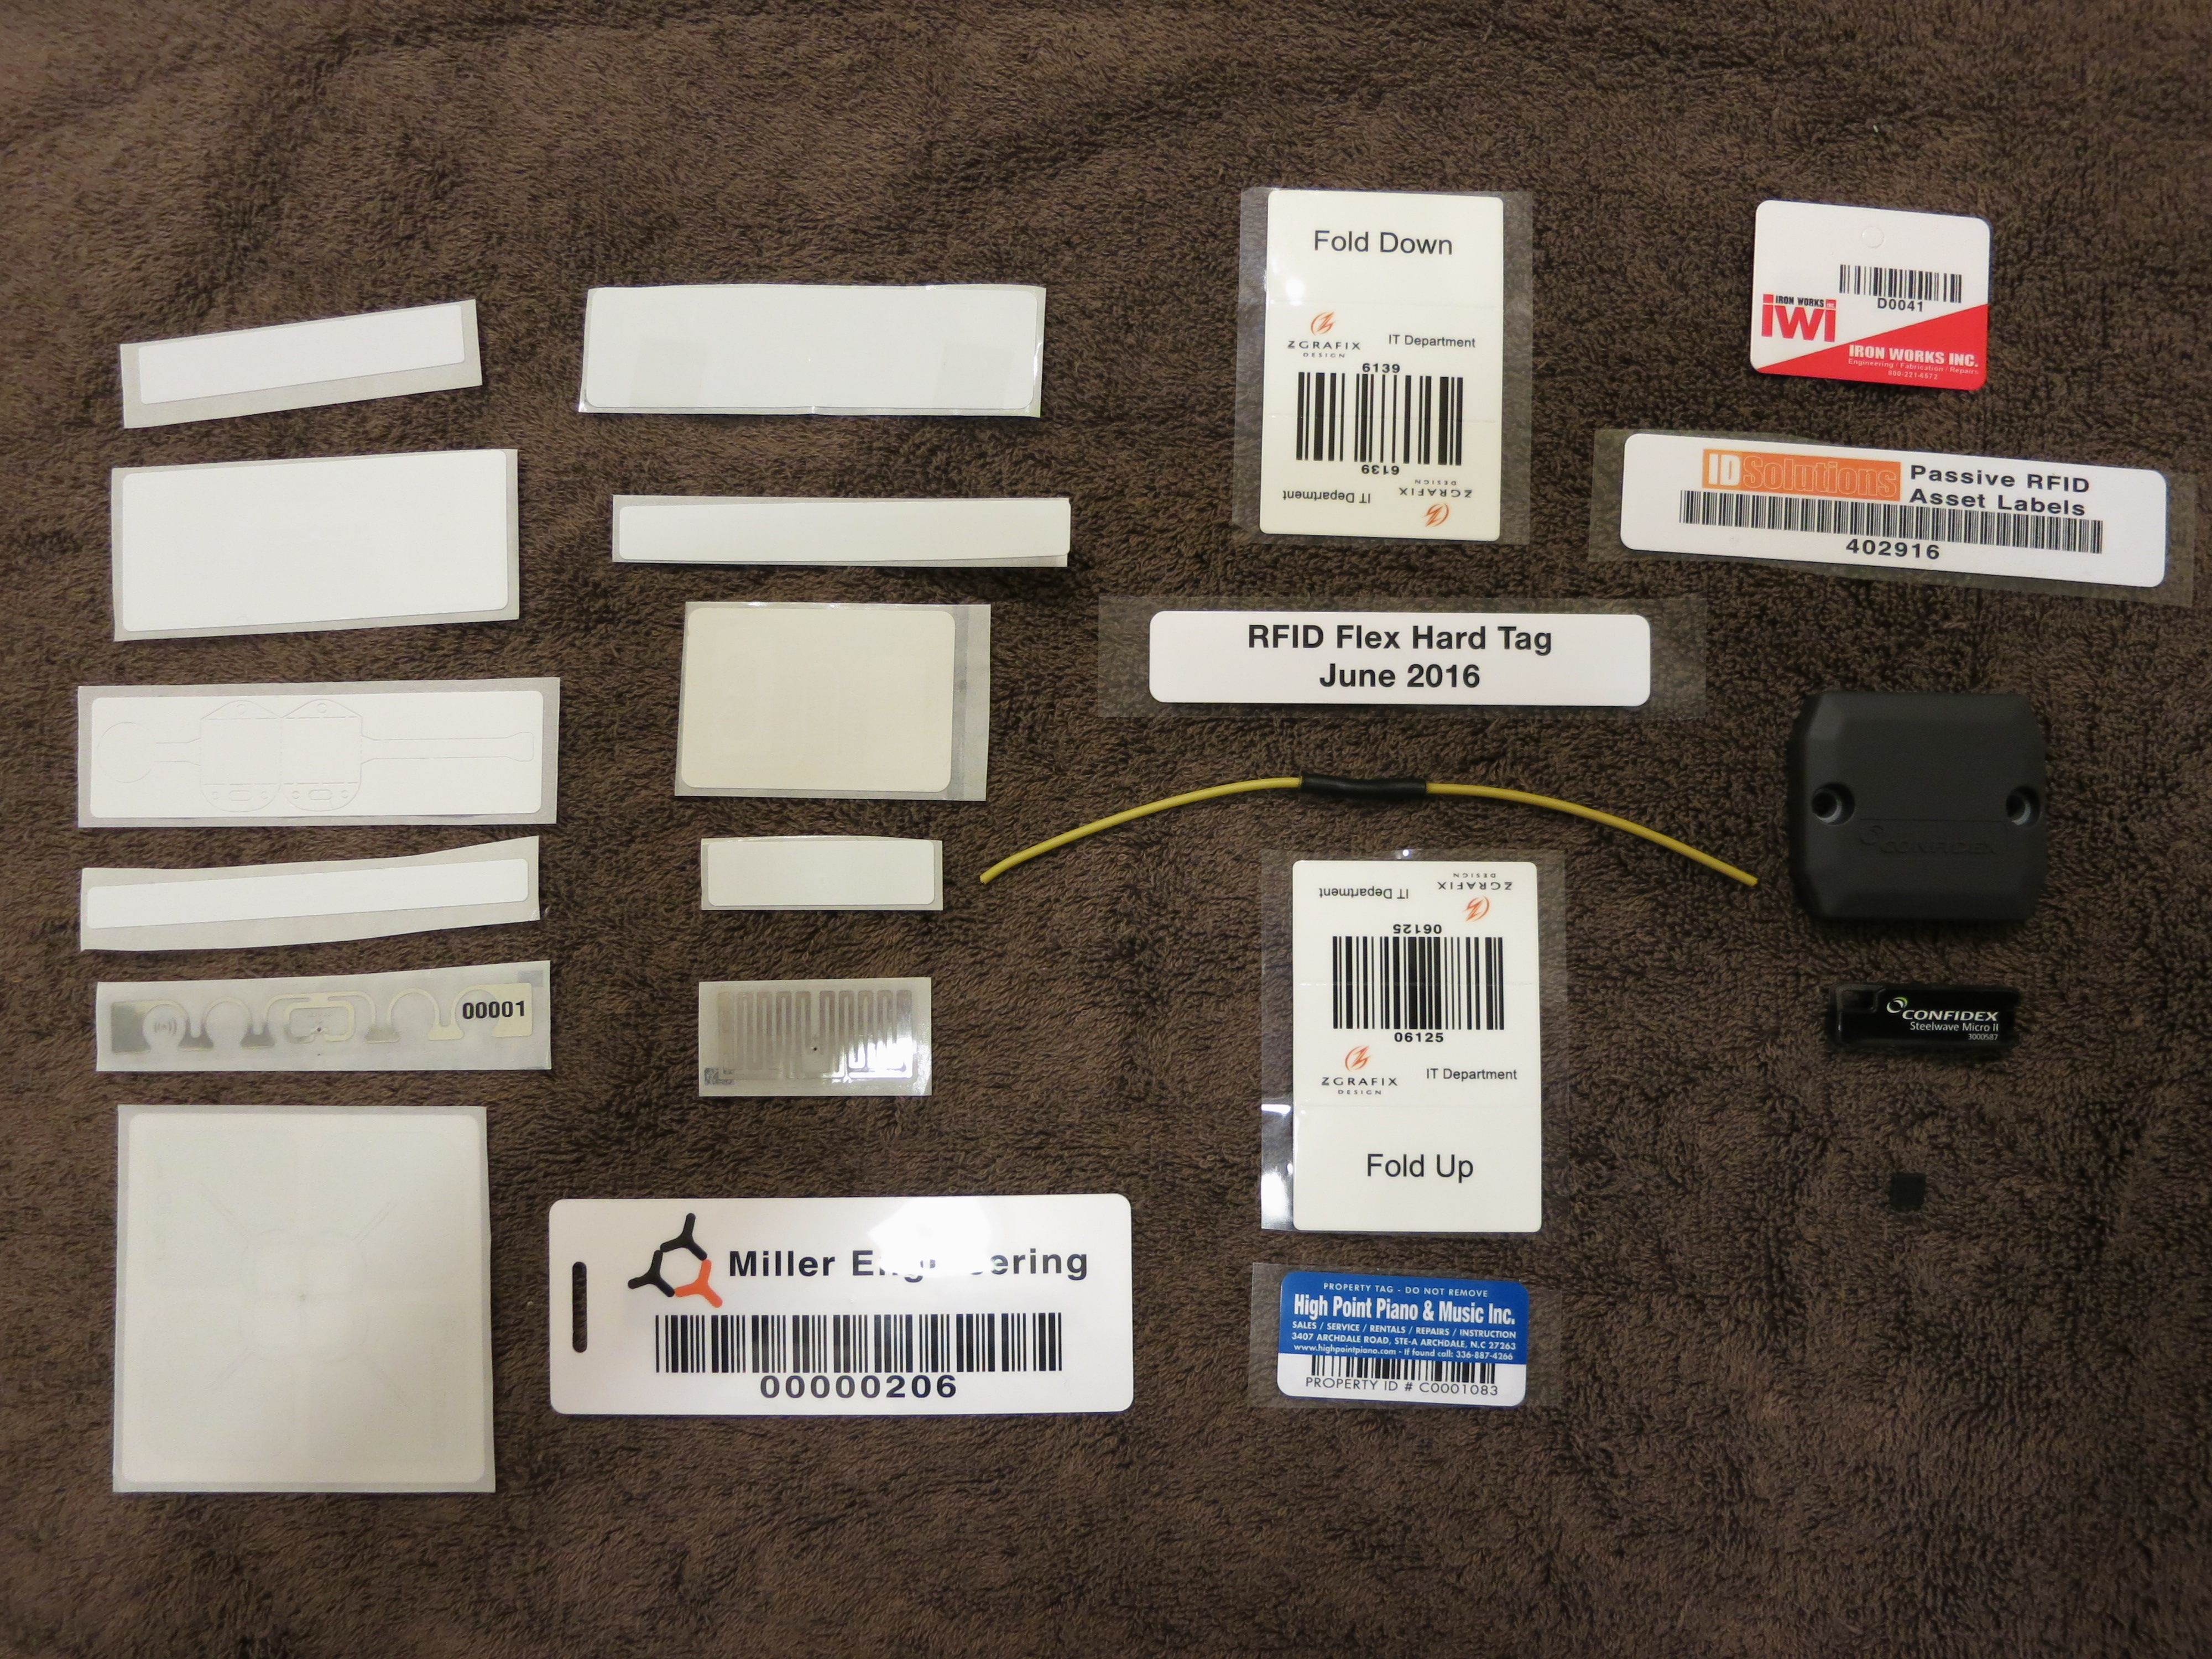 Confidant Mail Secure Email And Gigabyte Attachments Source Http Wwwelectronicscircuitscom Cirdir Data Printerport Here Is A Collection Of Rfid Tags Most These Are Badges Or Labels One Wire Dipole There Few Plastic Boxes Each Contains 96 Bit